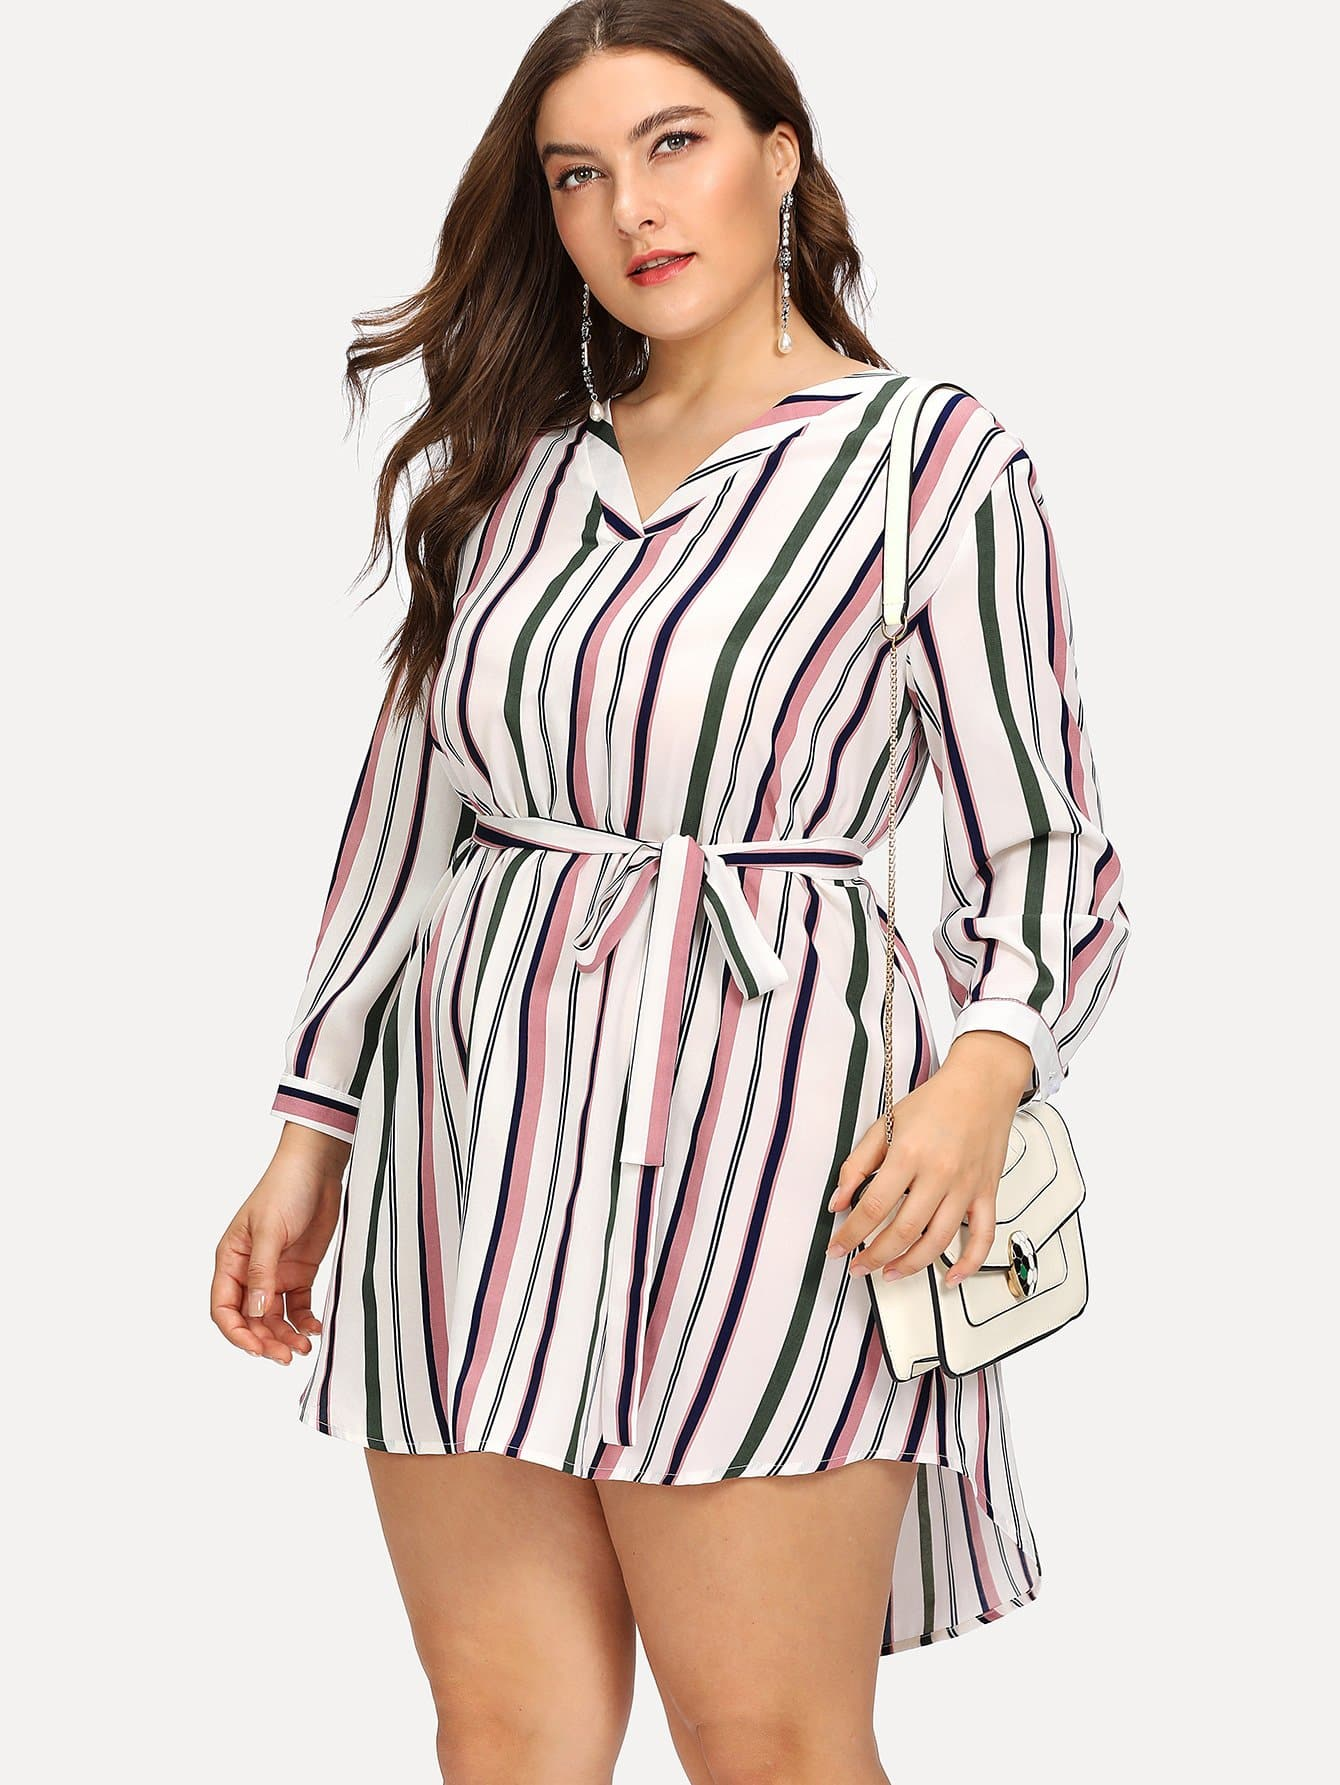 Vertical Striped Step Hem Dress tommy hilfiger часы tommy hilfiger 1791115 коллекция windsurf